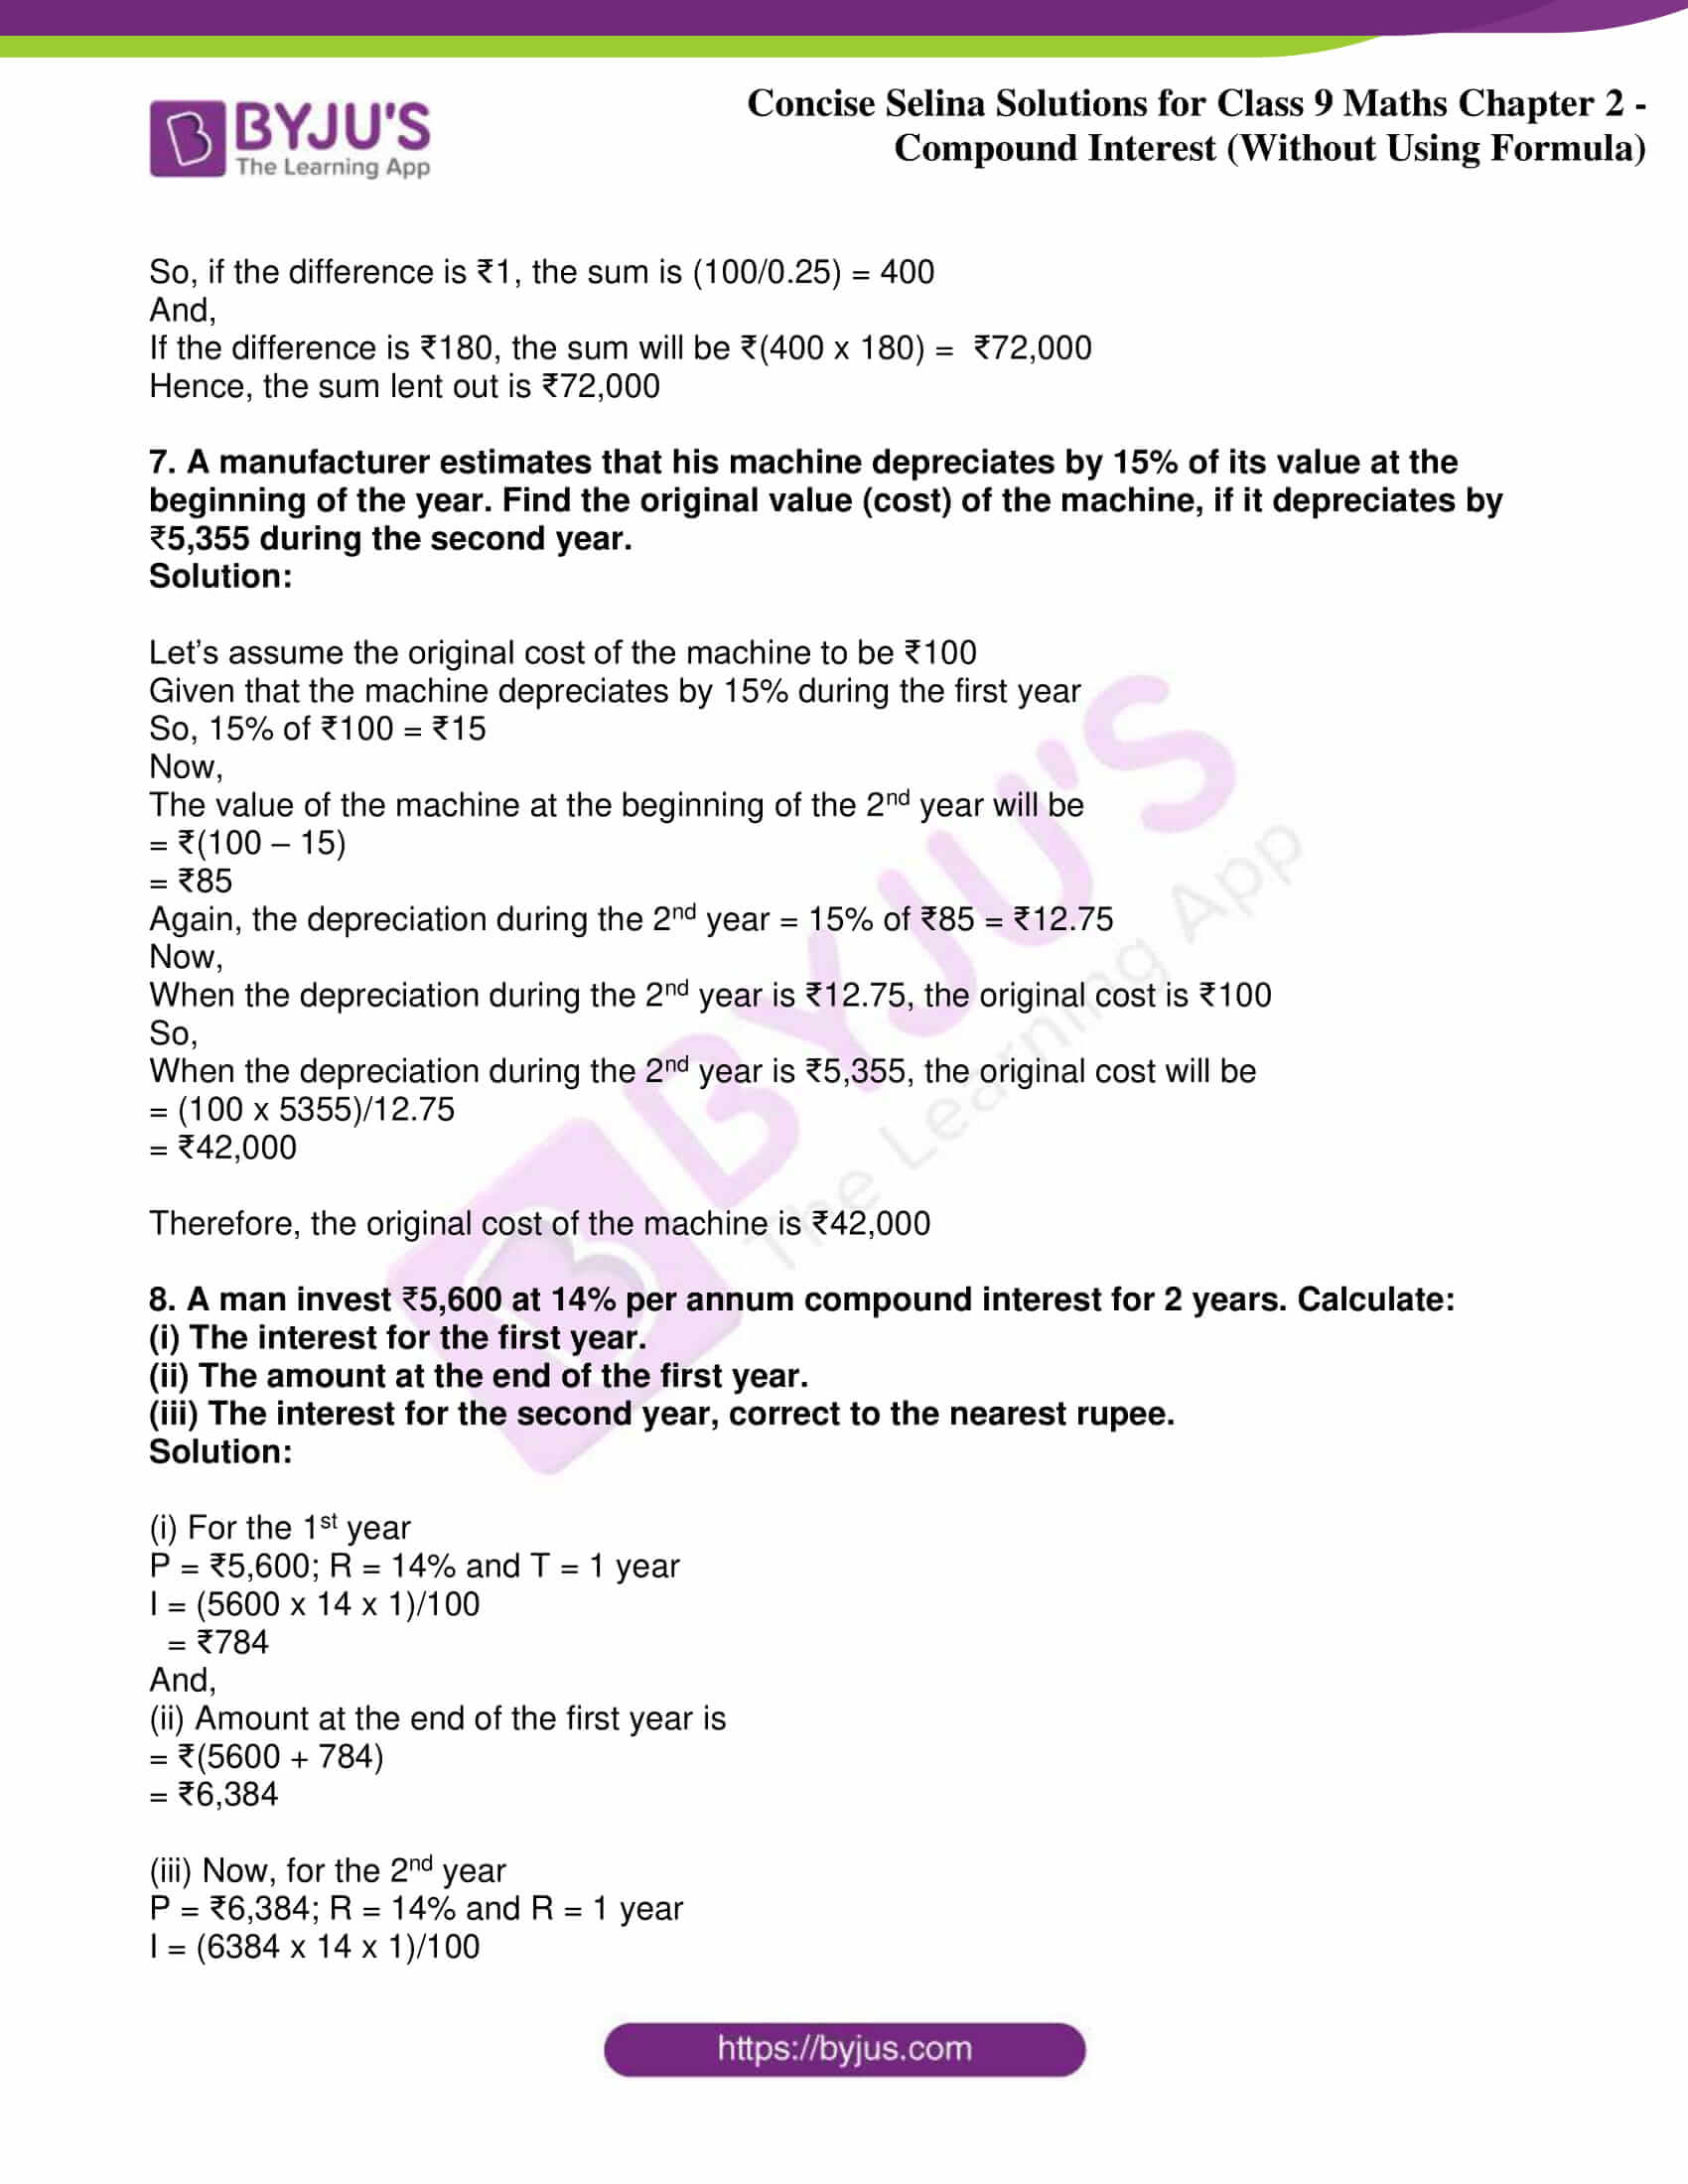 icse class 9 maths may10 selina solutions chapter 2 compound interest without using formula 12